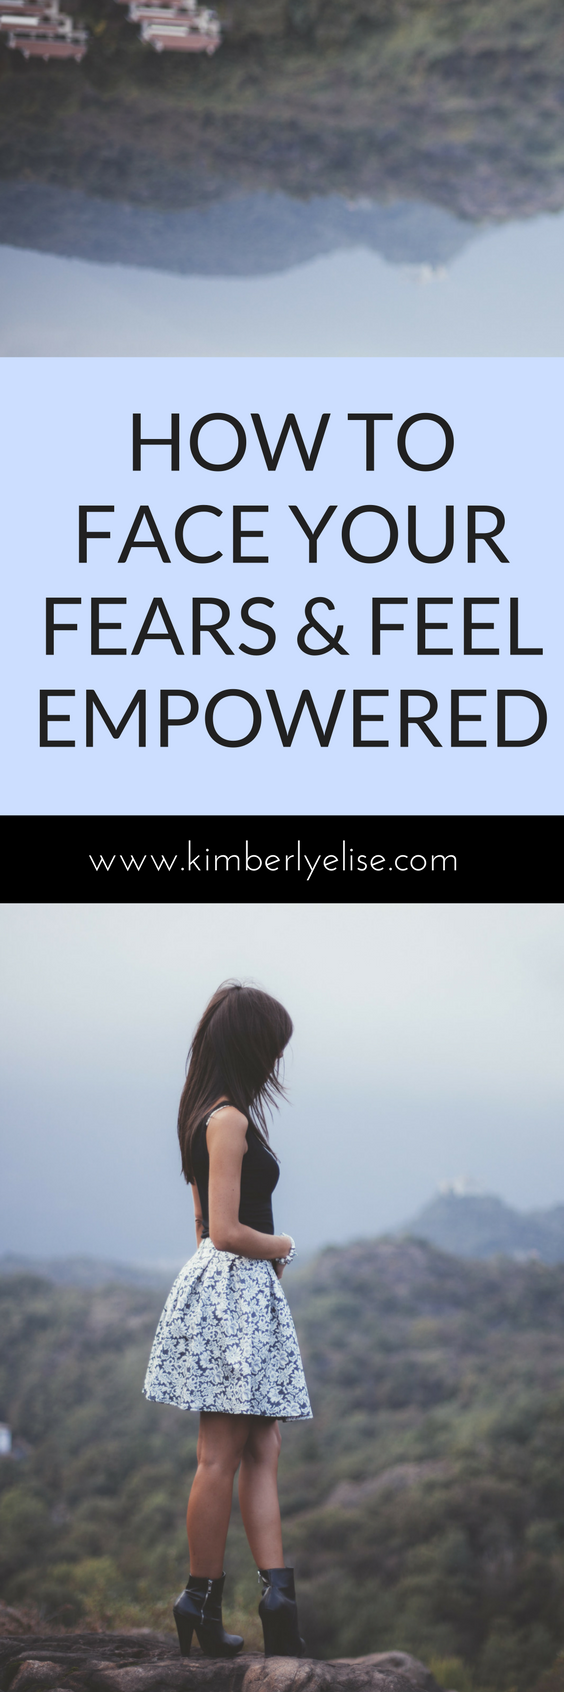 how-to-face-your-fears-and-feel-empowered